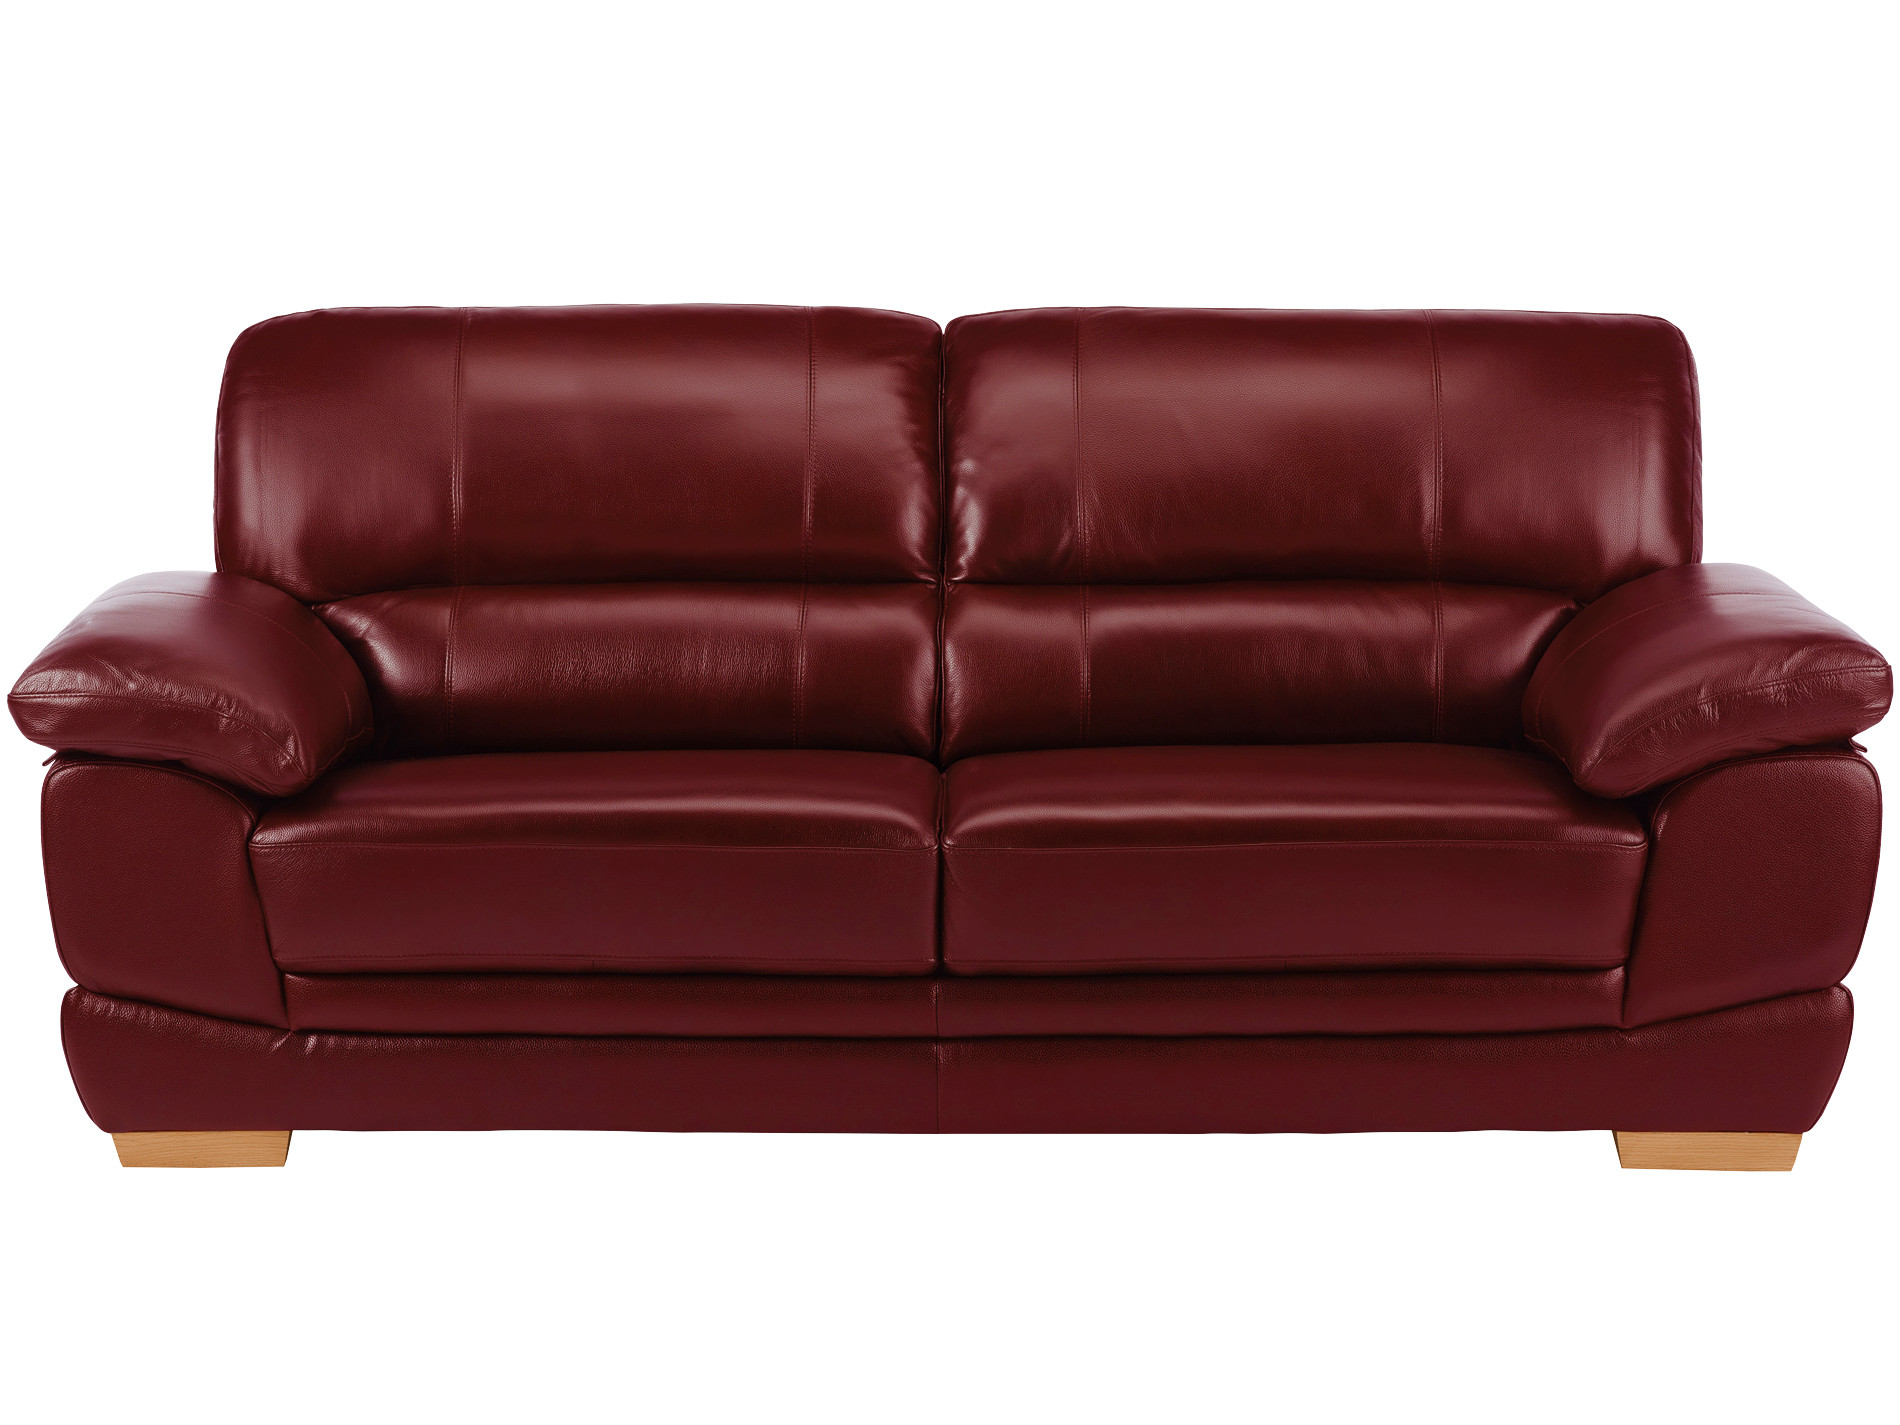 Cameron Burgundy Leather 3 Seater Sofa